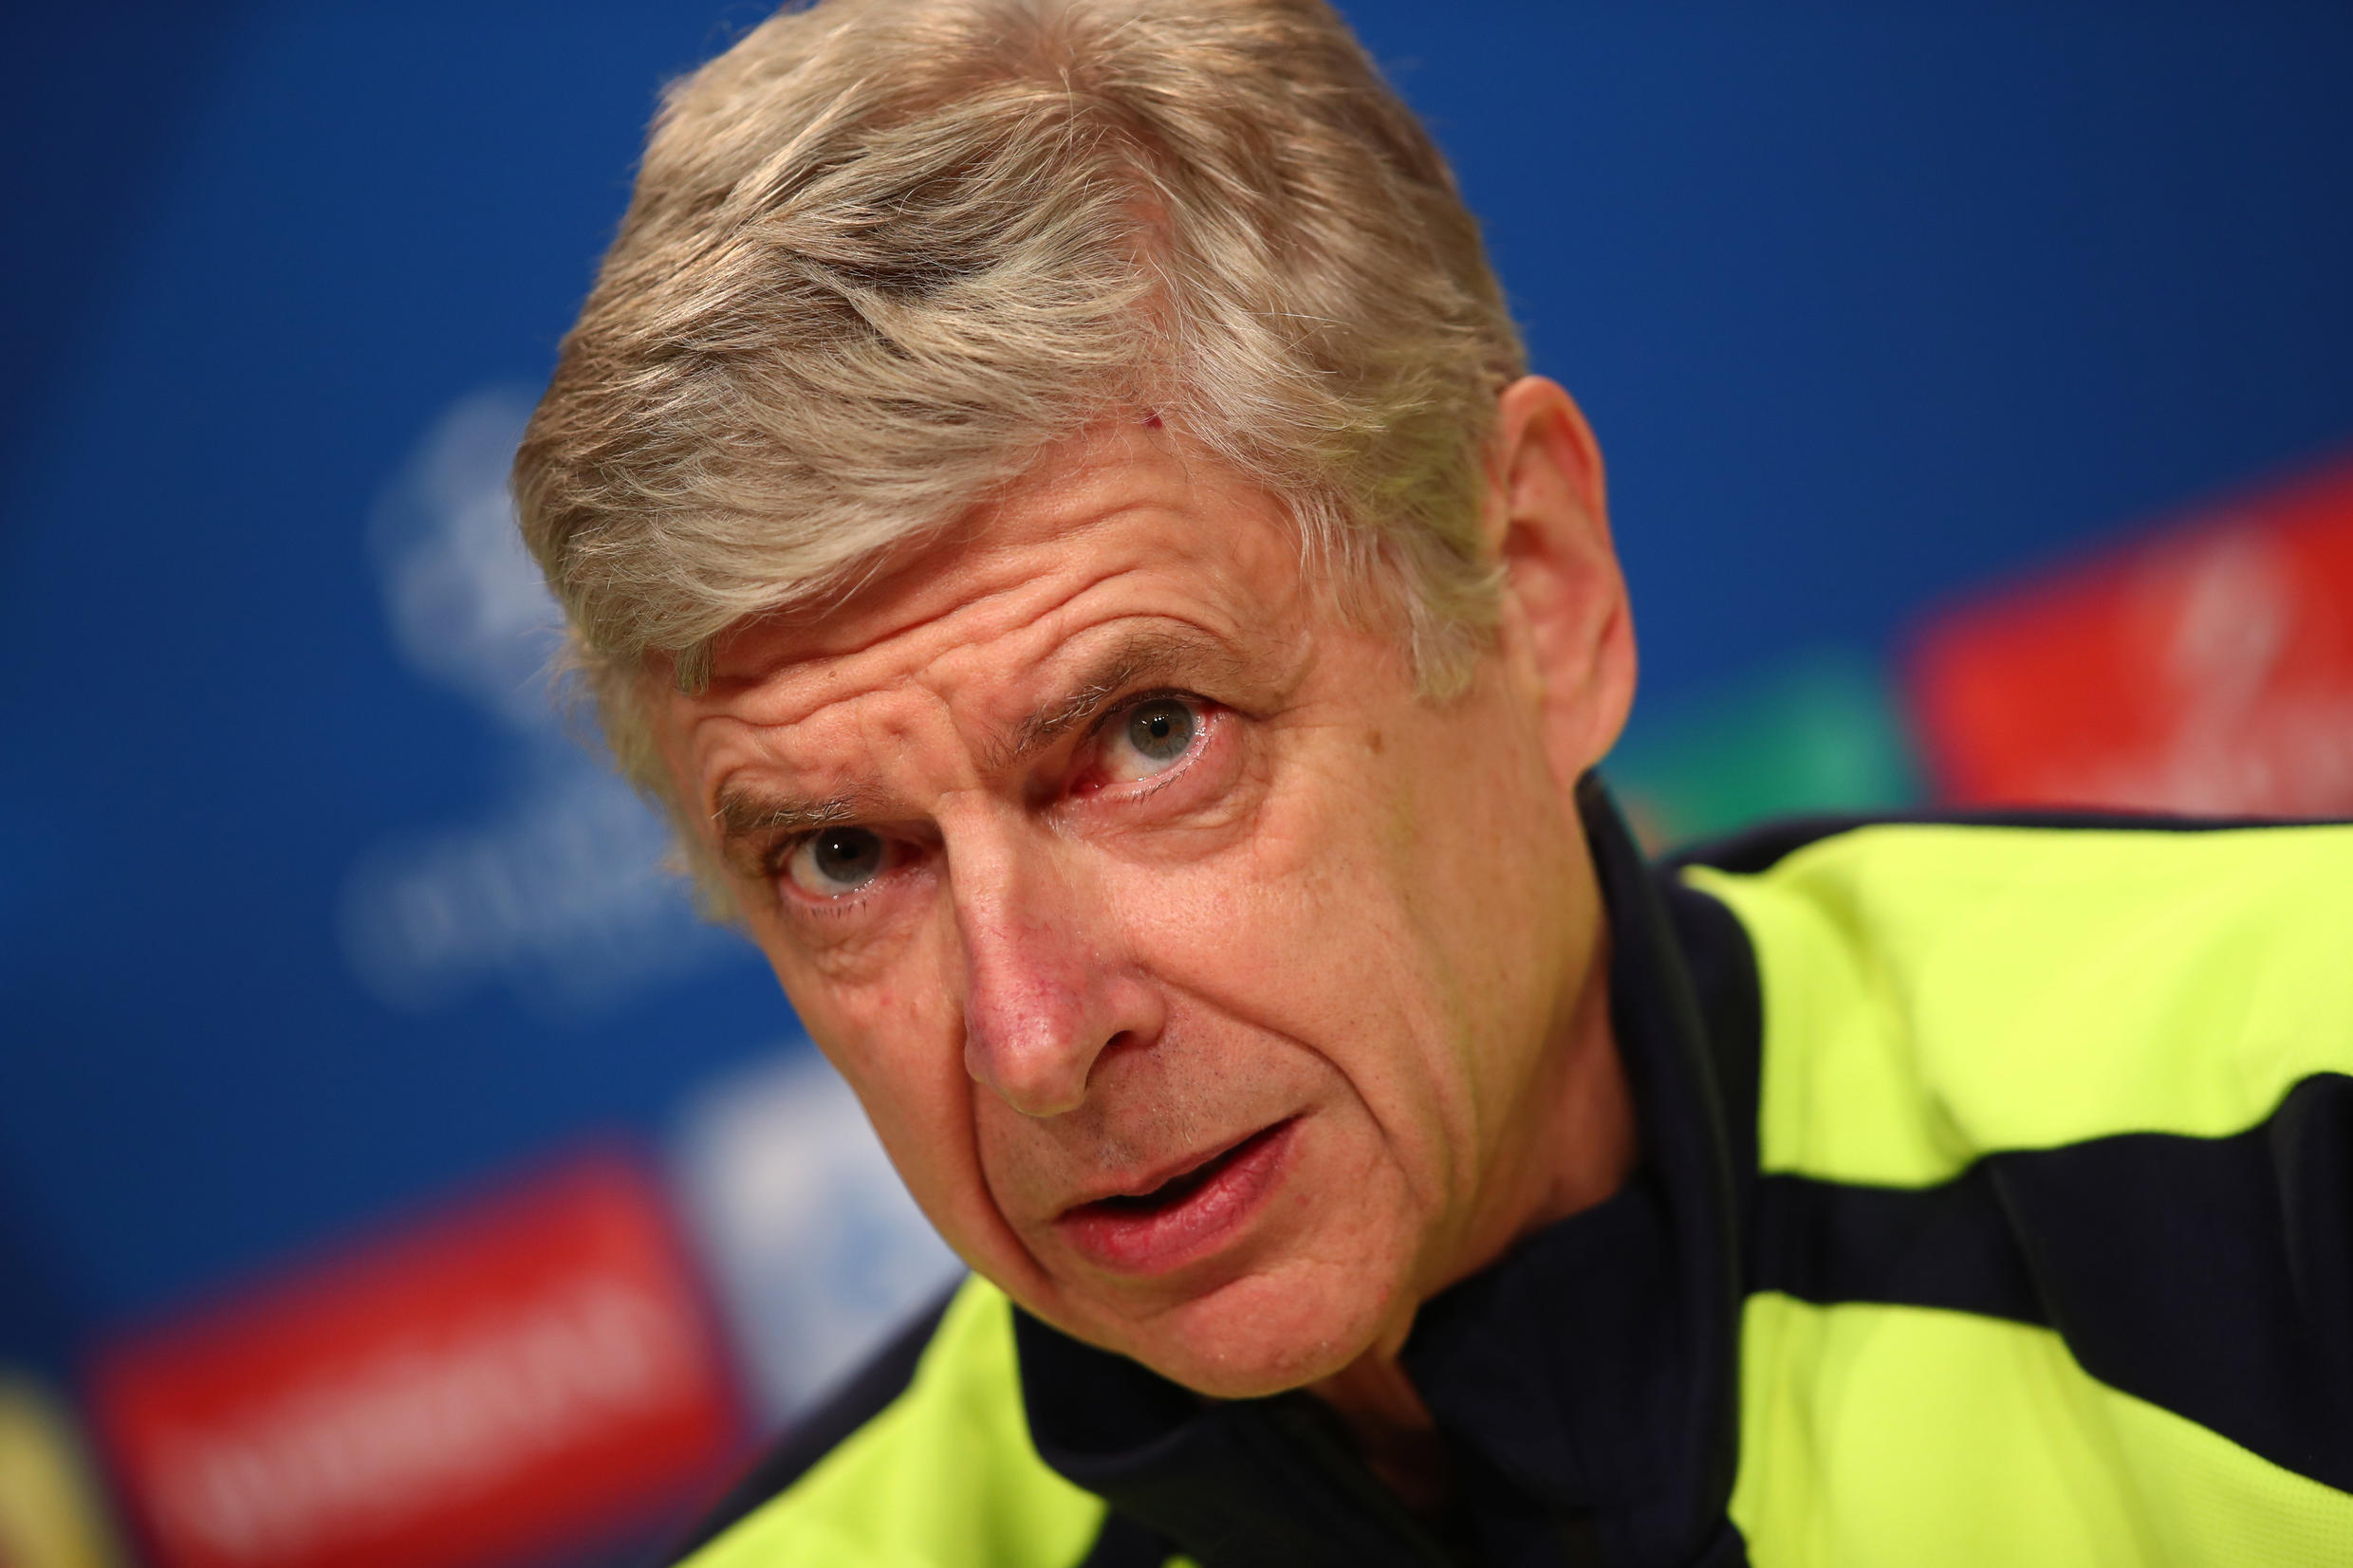 Arsenal manager, Arsene Wenger, said he feared that Arsenal's match would be called off due to the fan disturbances.